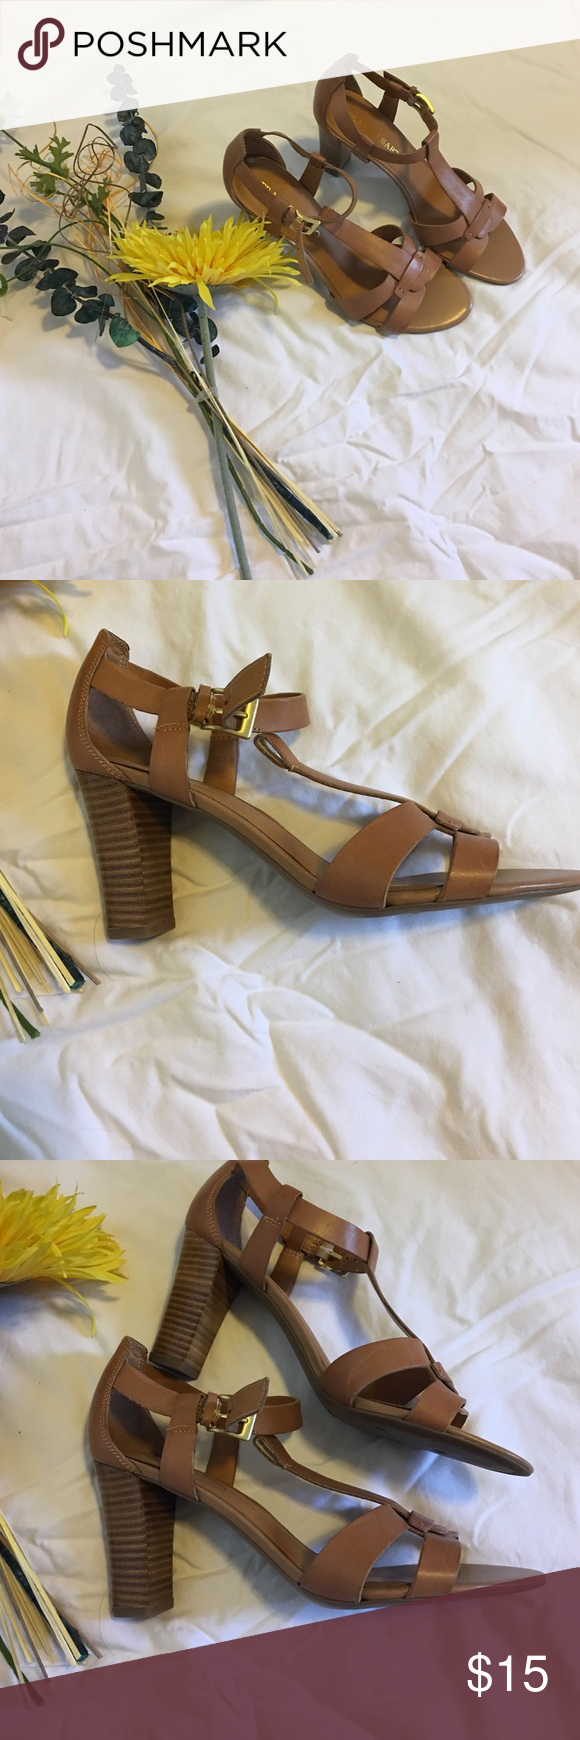 Brand new never worn Franco Sarto leather slings Purchased these Franco Sarto shoes and never worn.  Doing some closet purging and decided it is time to let go.  Size 8 tan leather slings Franco Sarto Shoes Sandals